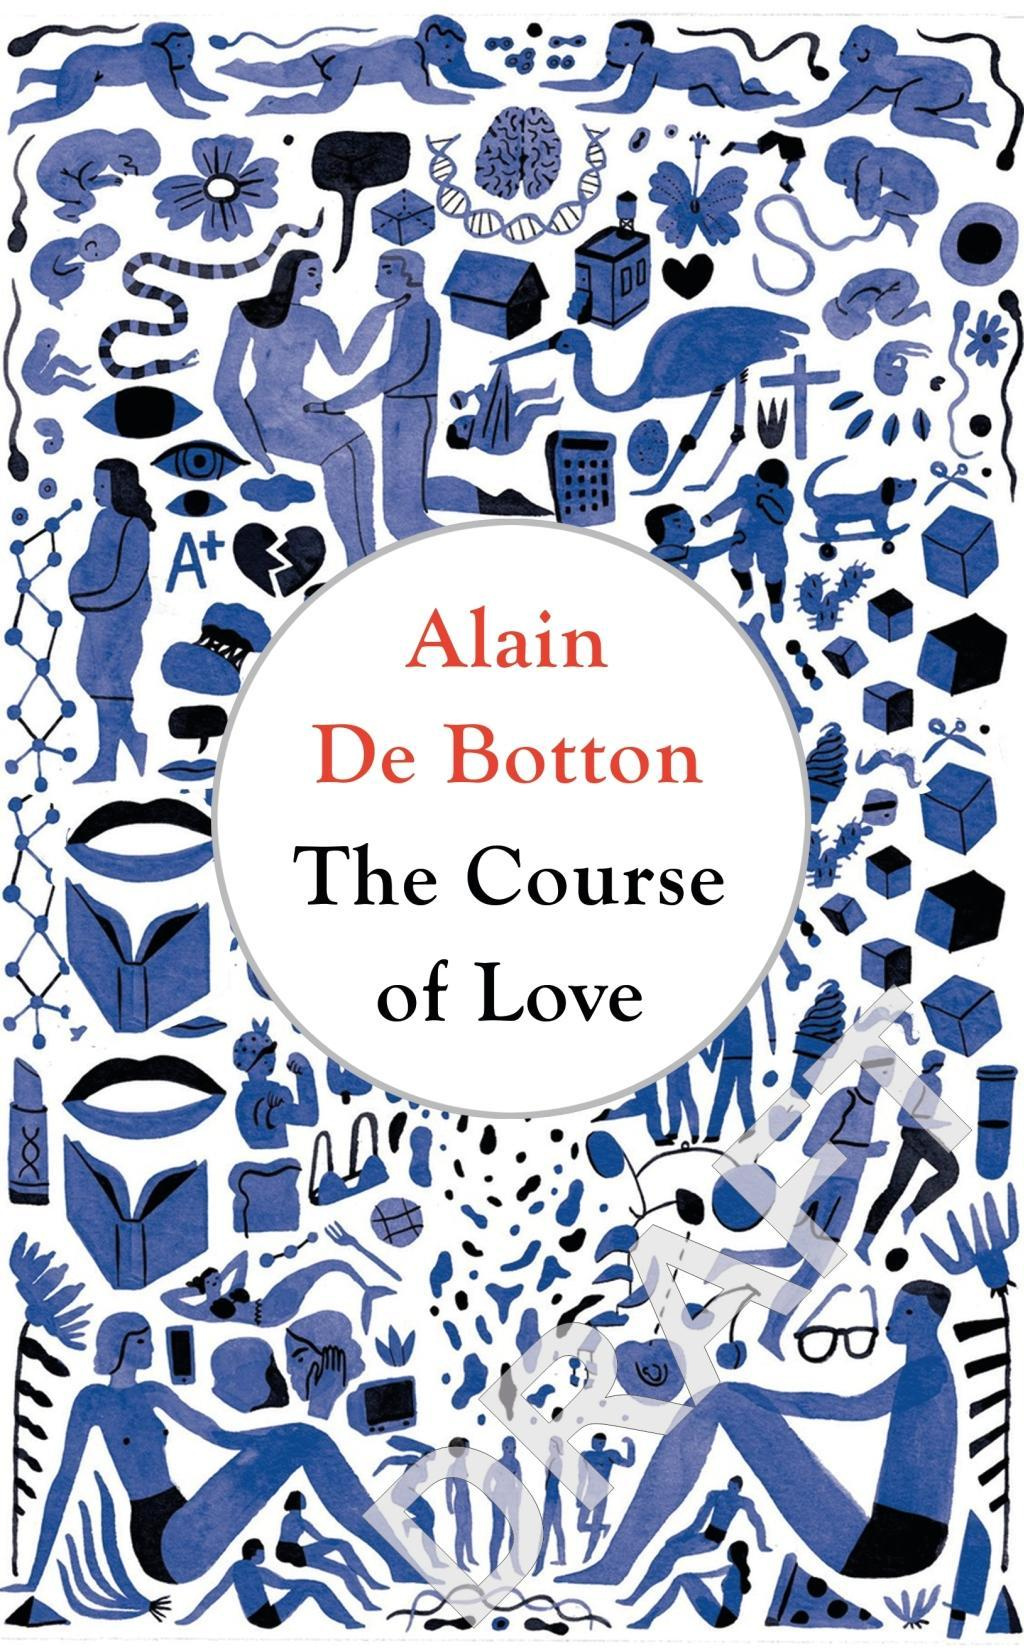 The Course of Love by Alain de Botton, ISBN: 9780241145487